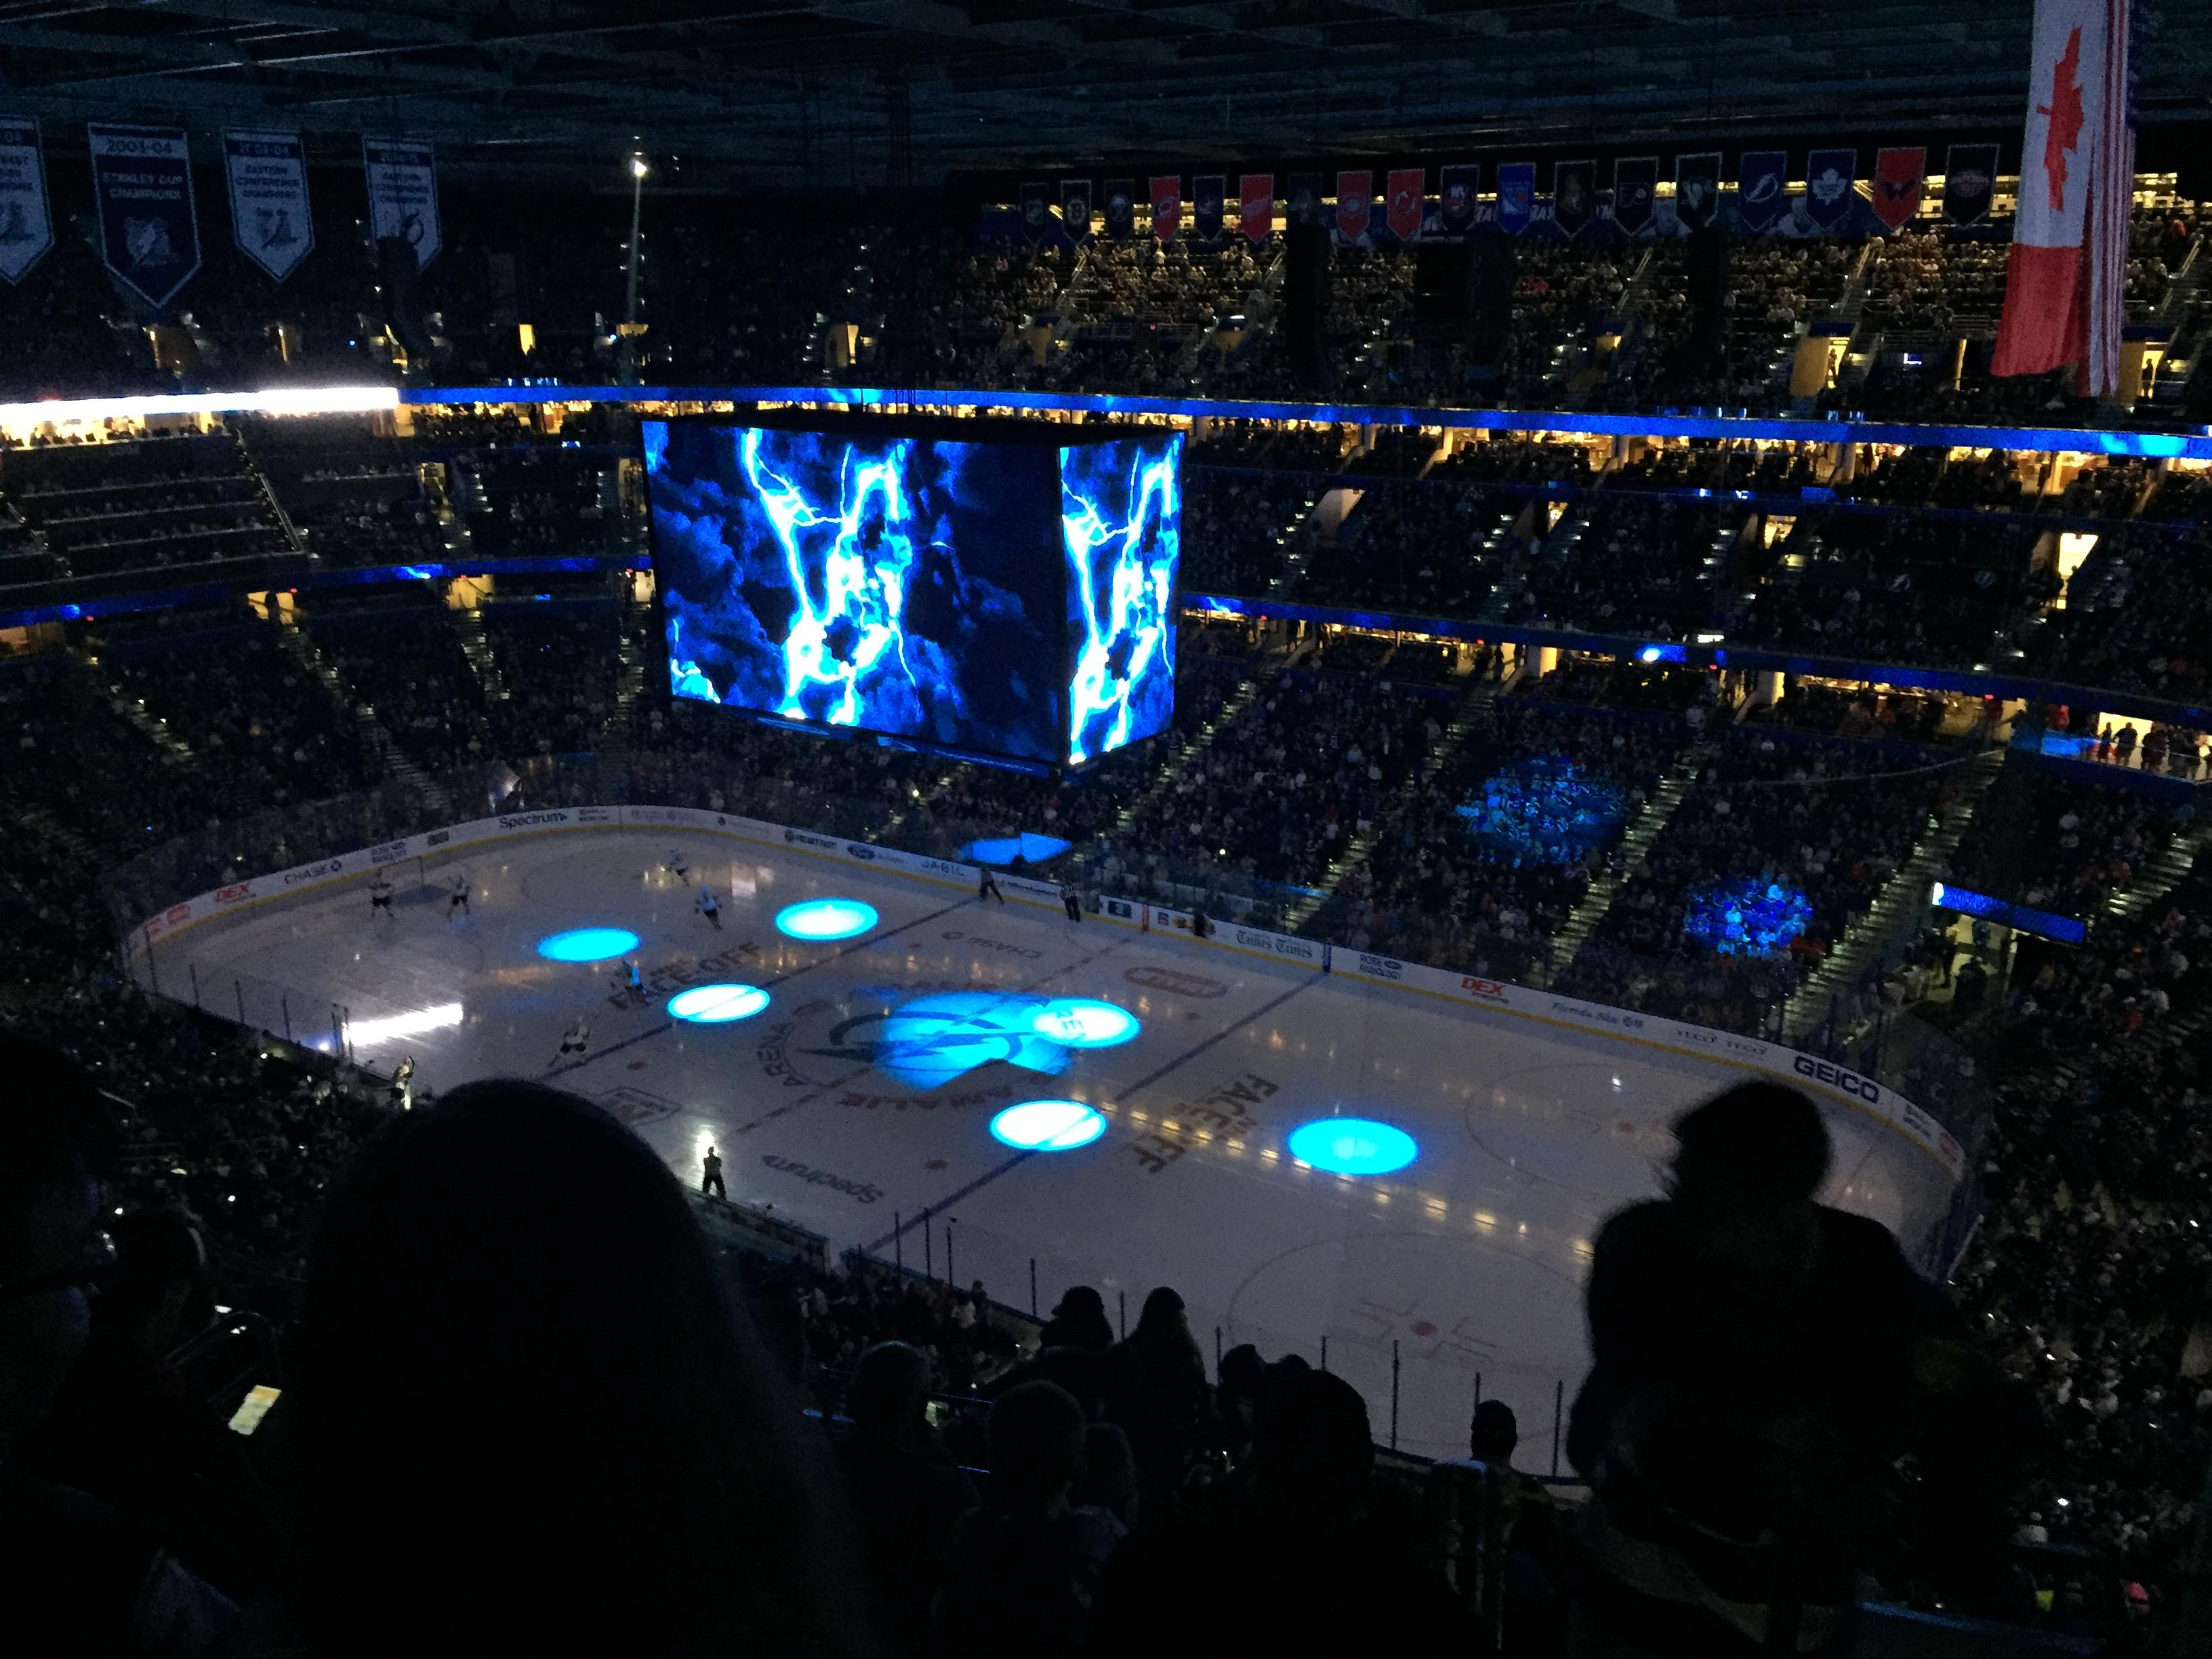 Amalie Arena Section 328 Row K Seat 4